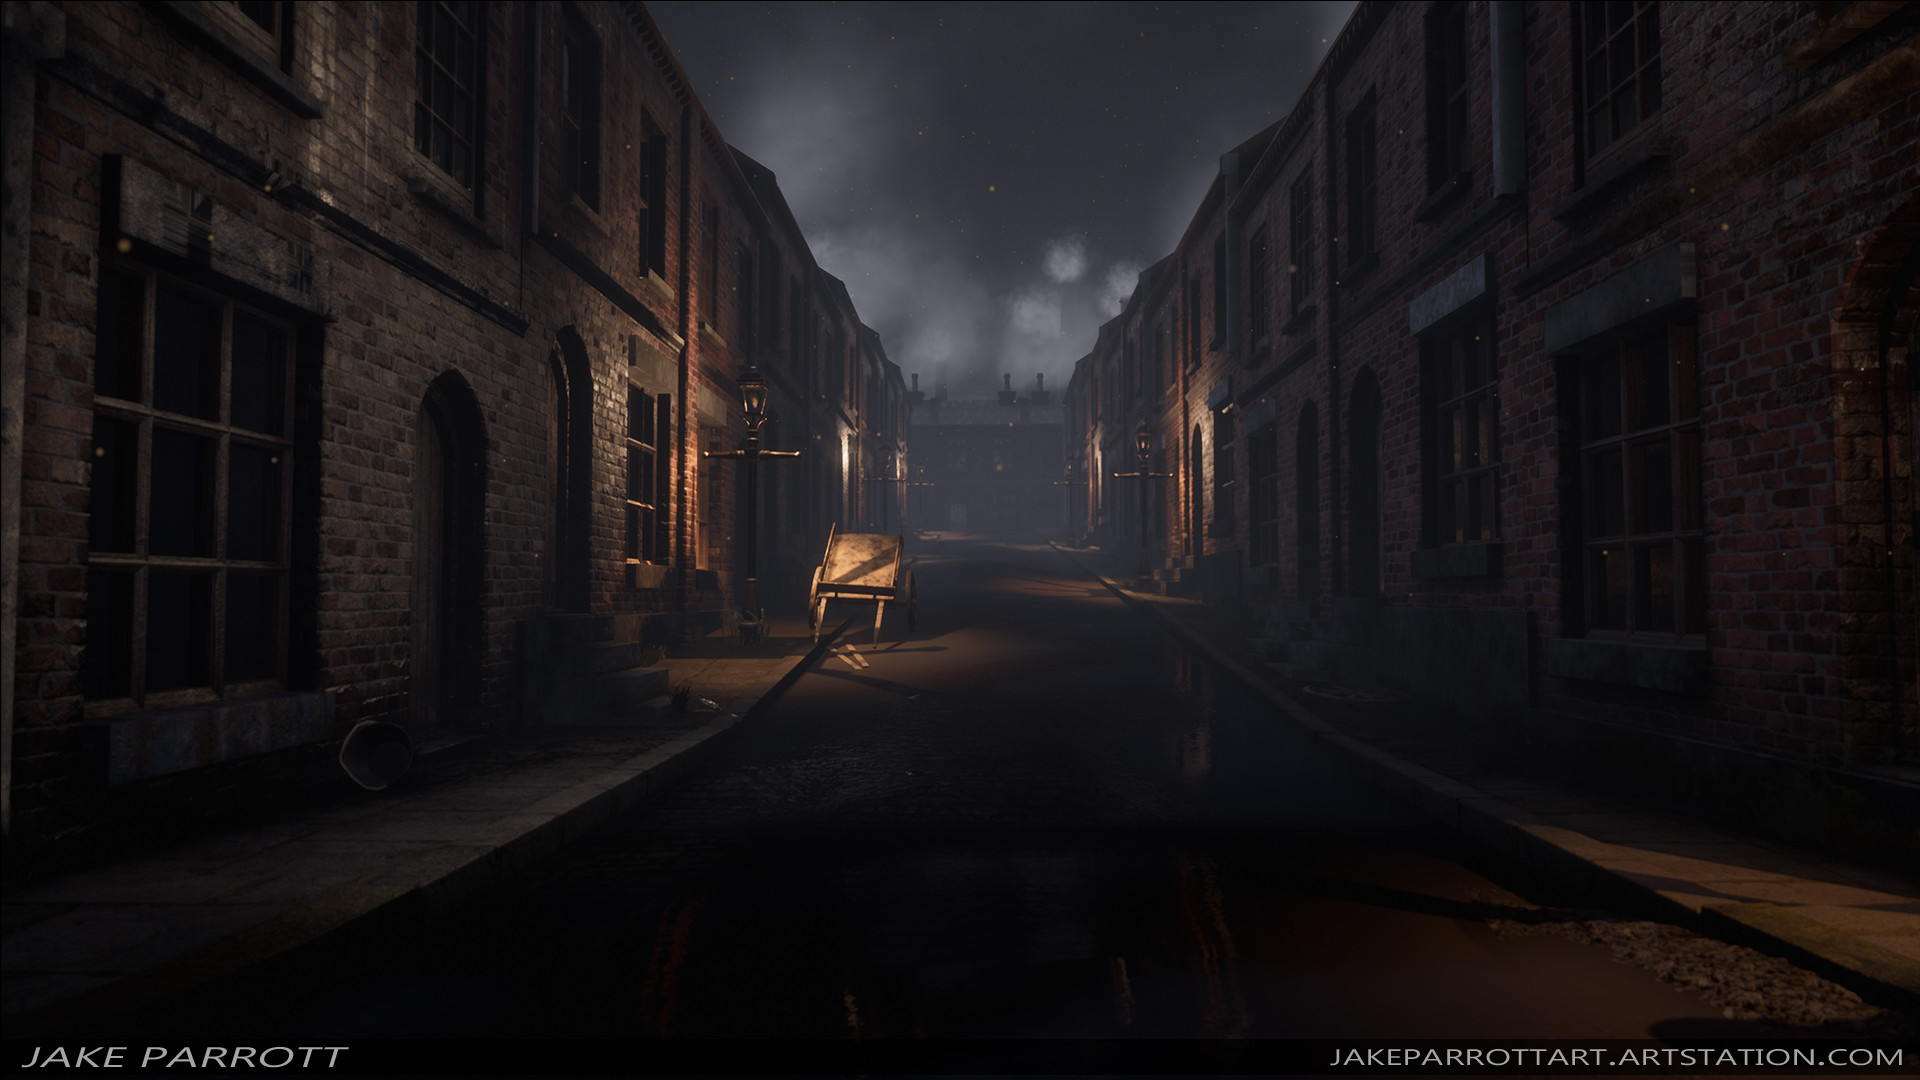 Jake Parrott Final Year Project Victorian Streets And